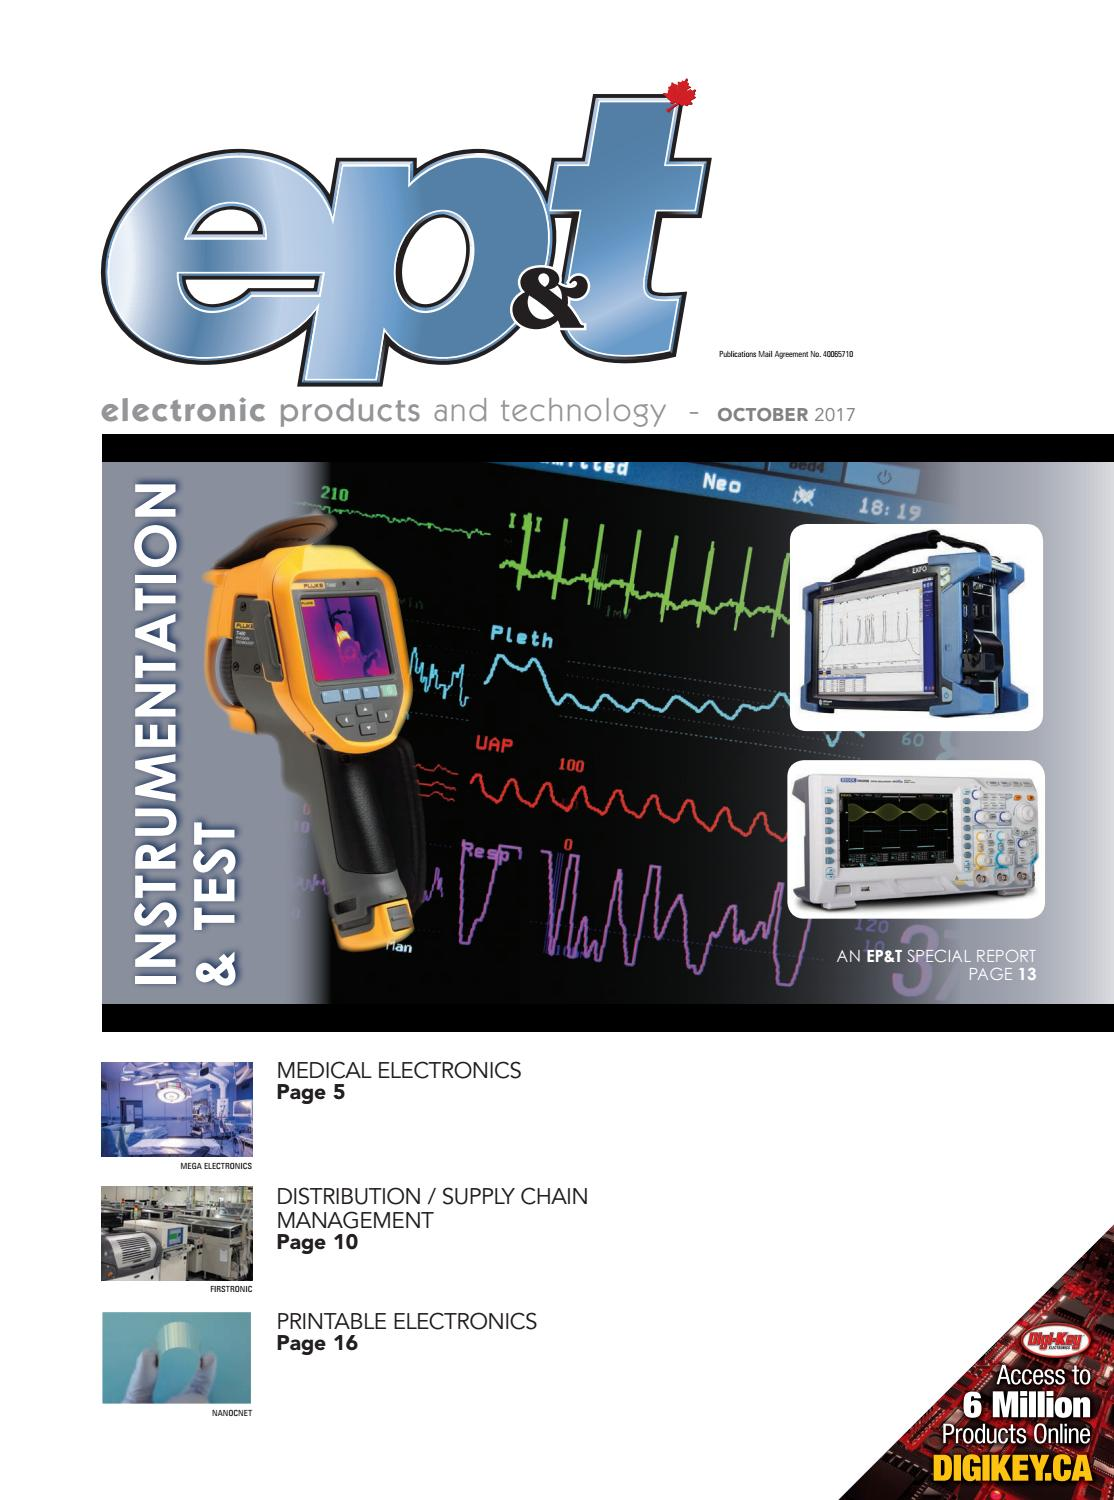 Electronic Products And Technology October 2017 By Annex Newcom Lp The Main Limitation In Circuit Simulation Digichip Is That You Can Issuu